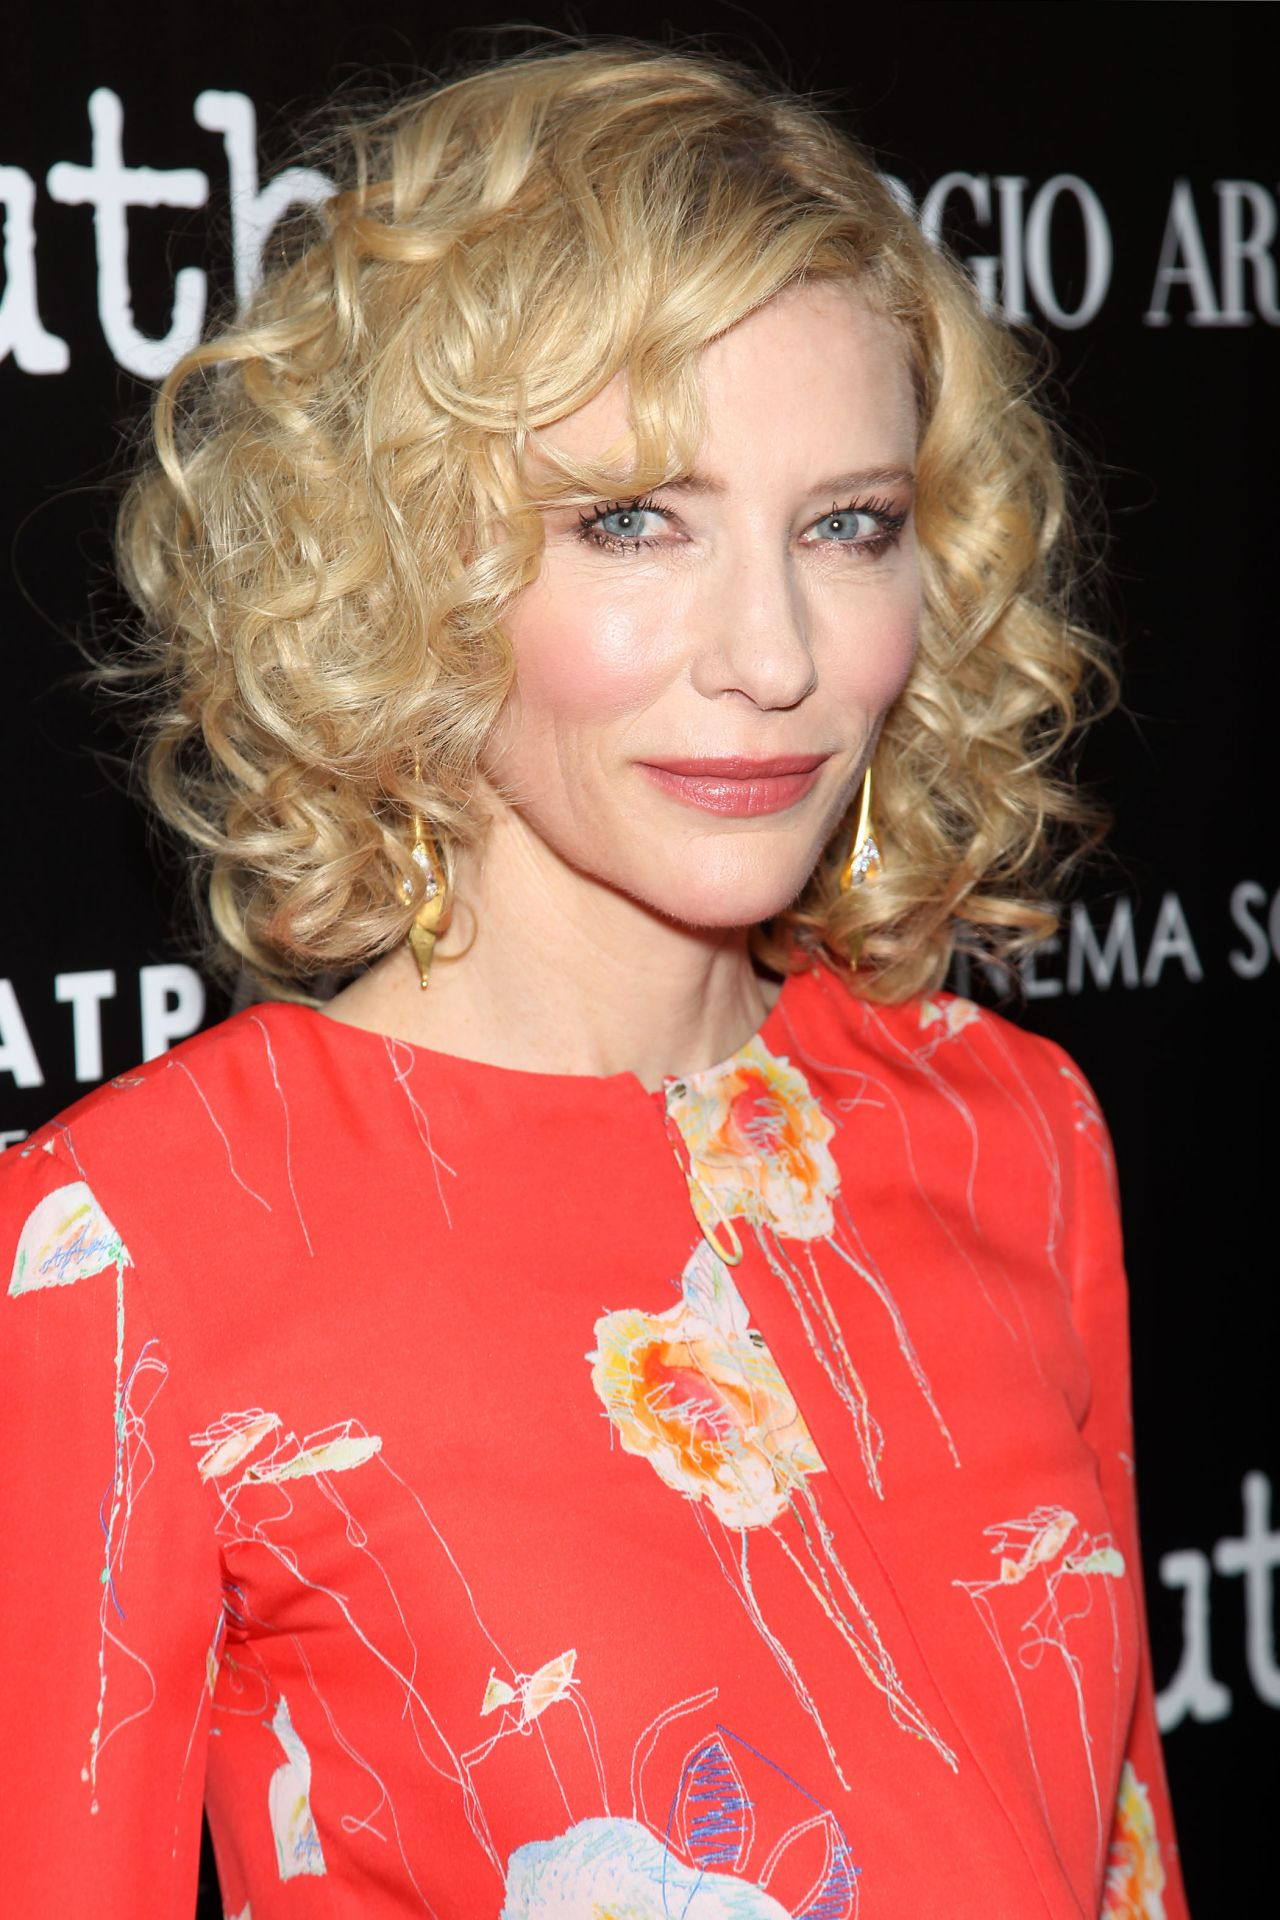 Cate Blanchett - Arriving the Premiere of